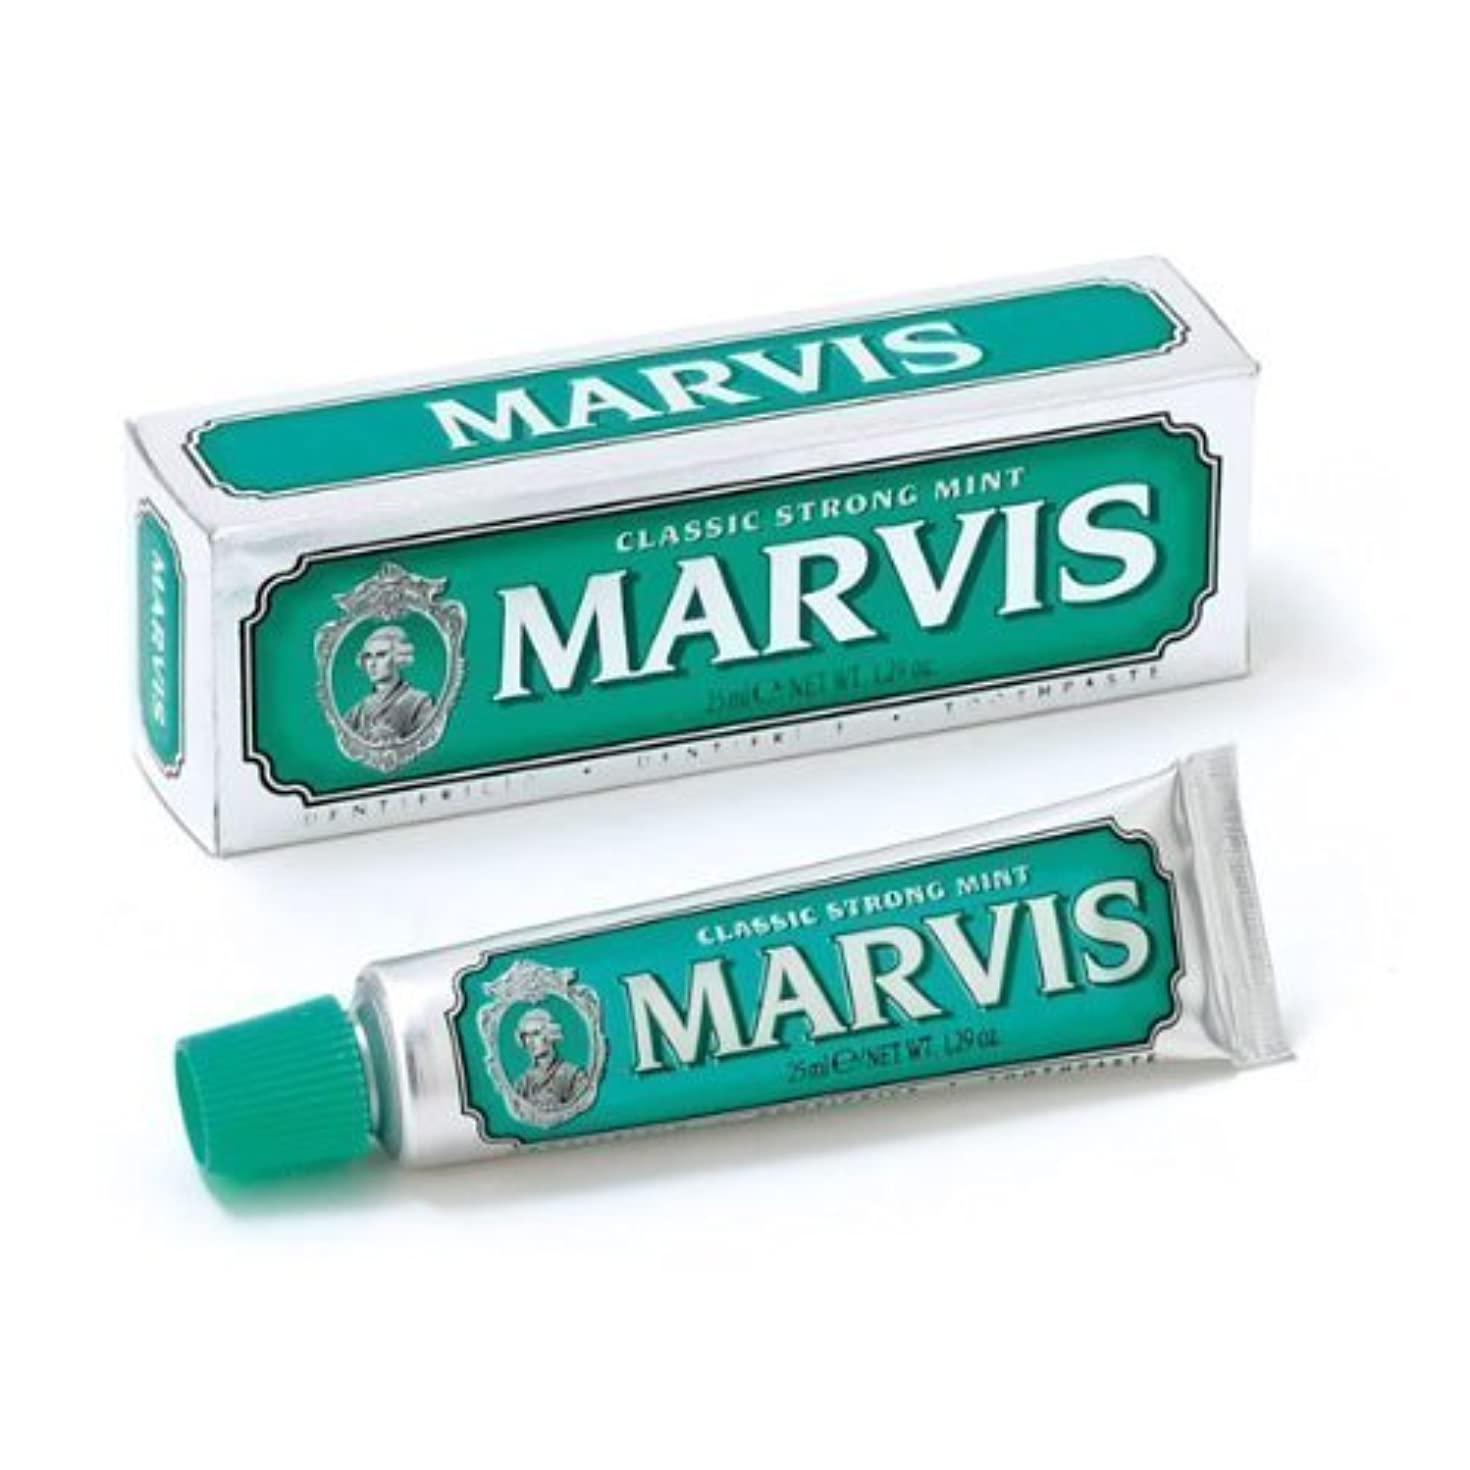 公使館何故なのエージェントMarvis Toothpaste - Classic Strong Mint 25ml Travel Size - 4 PACK by Marvis [並行輸入品]